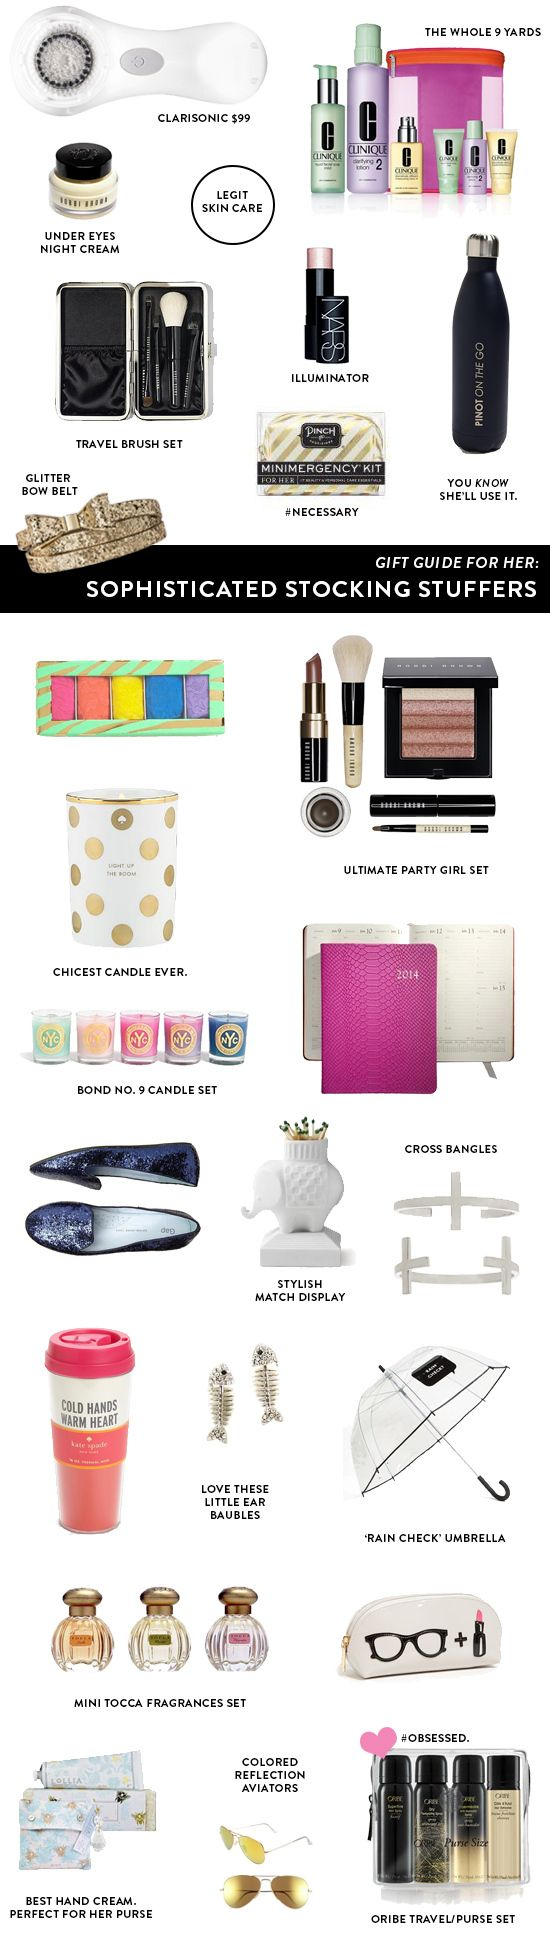 For Her: Sophisticated Stocking Stuffers